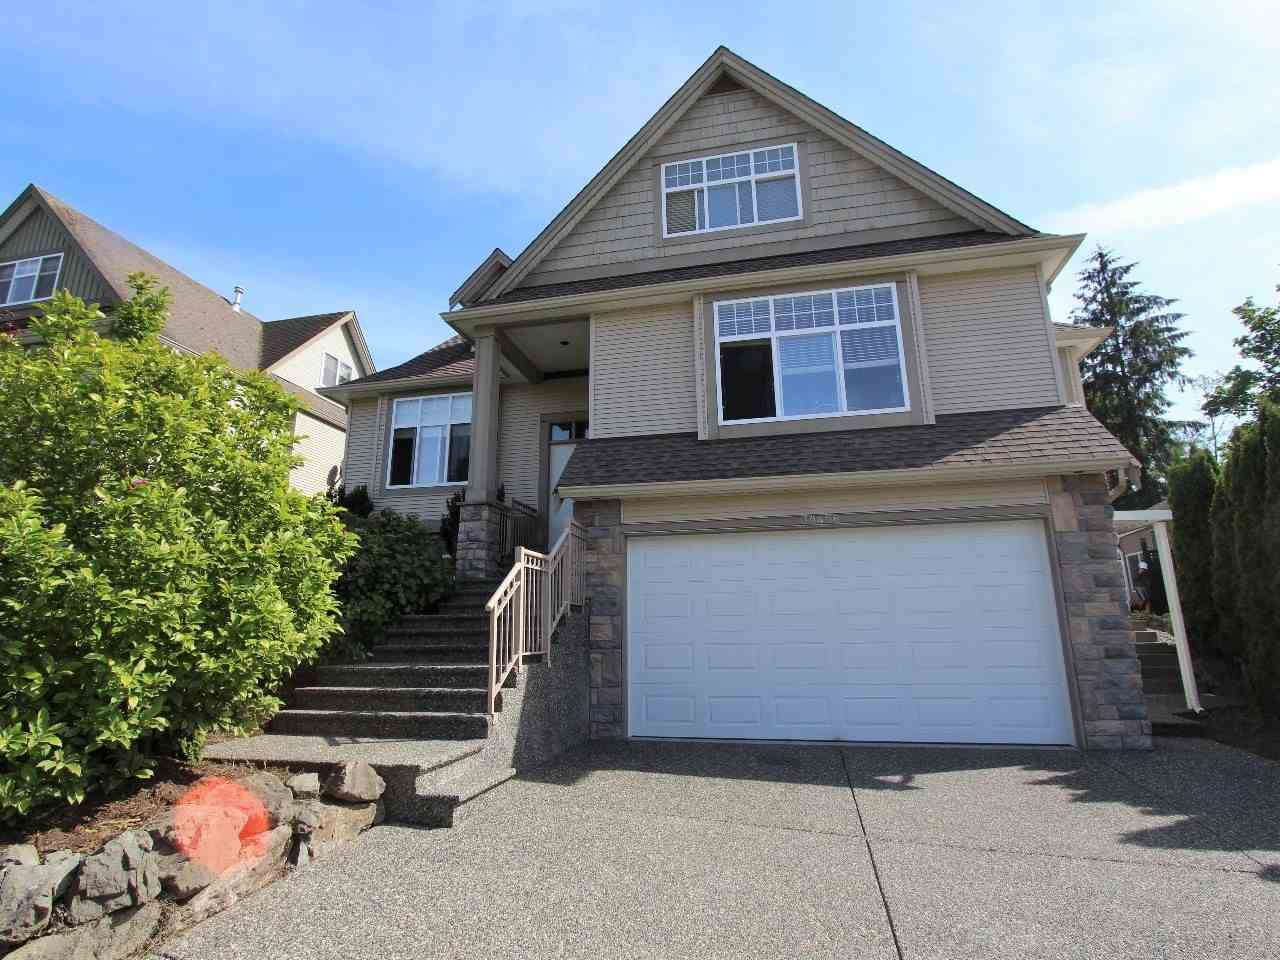 Main Photo: 30456 HERITAGE Drive in Abbotsford: Abbotsford West House for sale : MLS® # R2066678